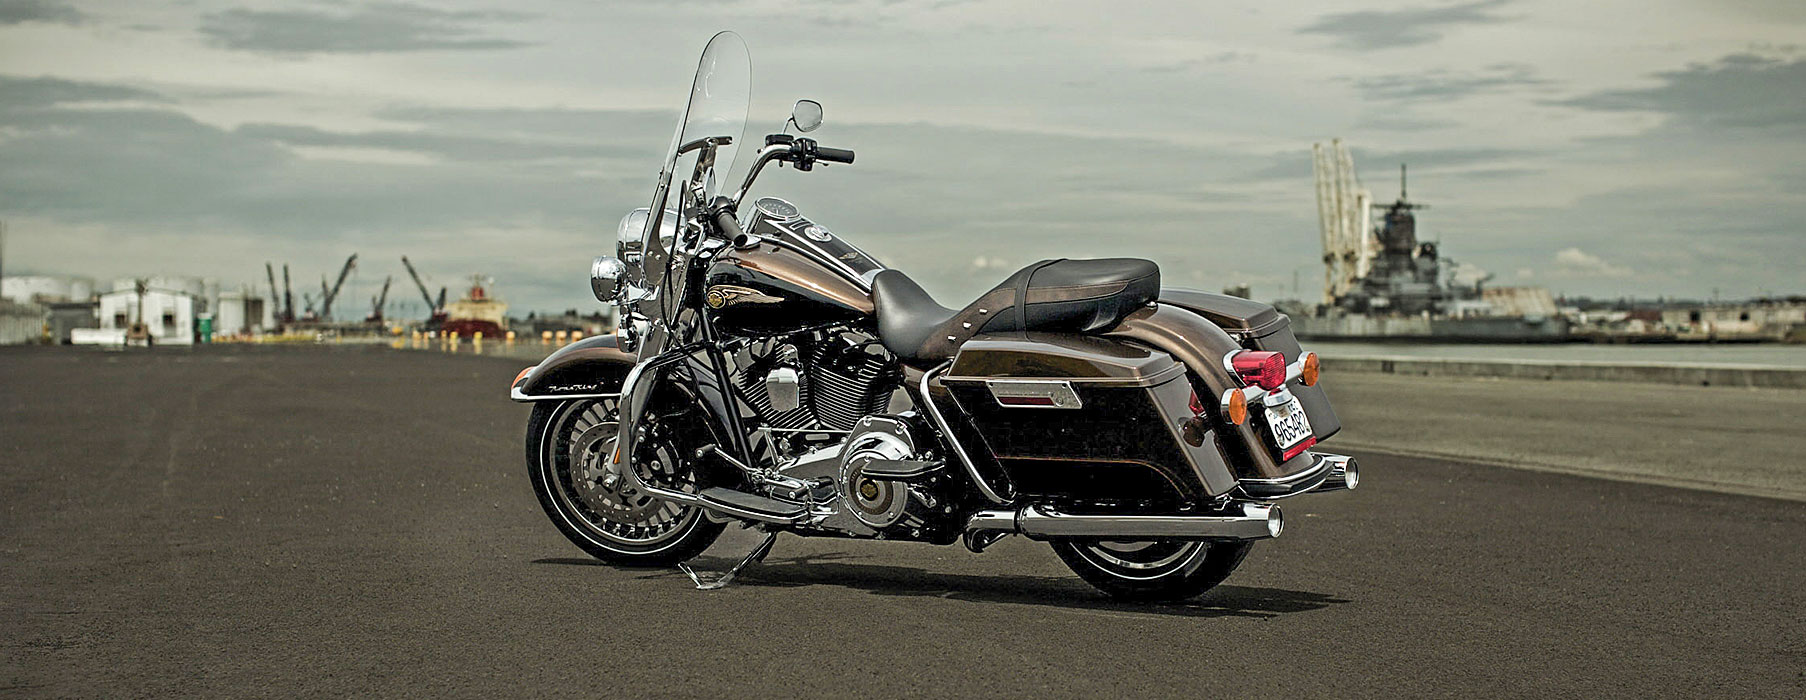 Road King<sup>®</sup> Anniversary Edition